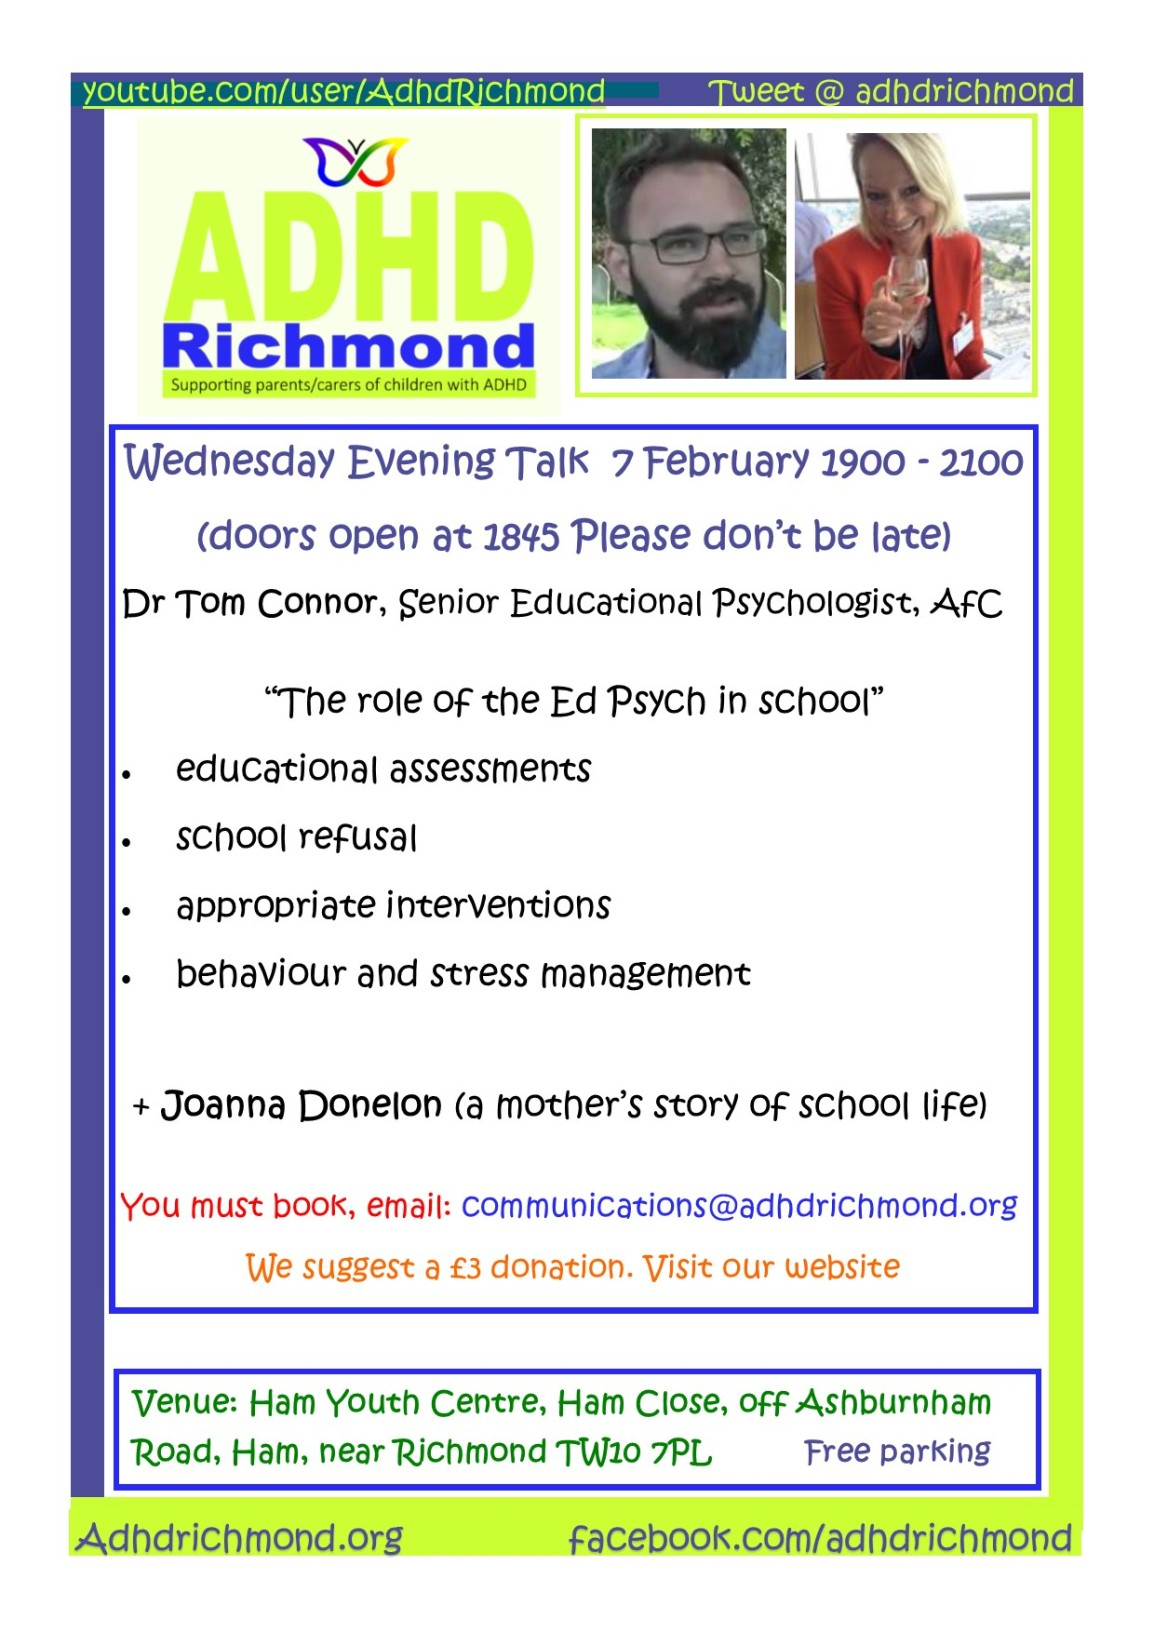 Feb 7 Talk - wed eve